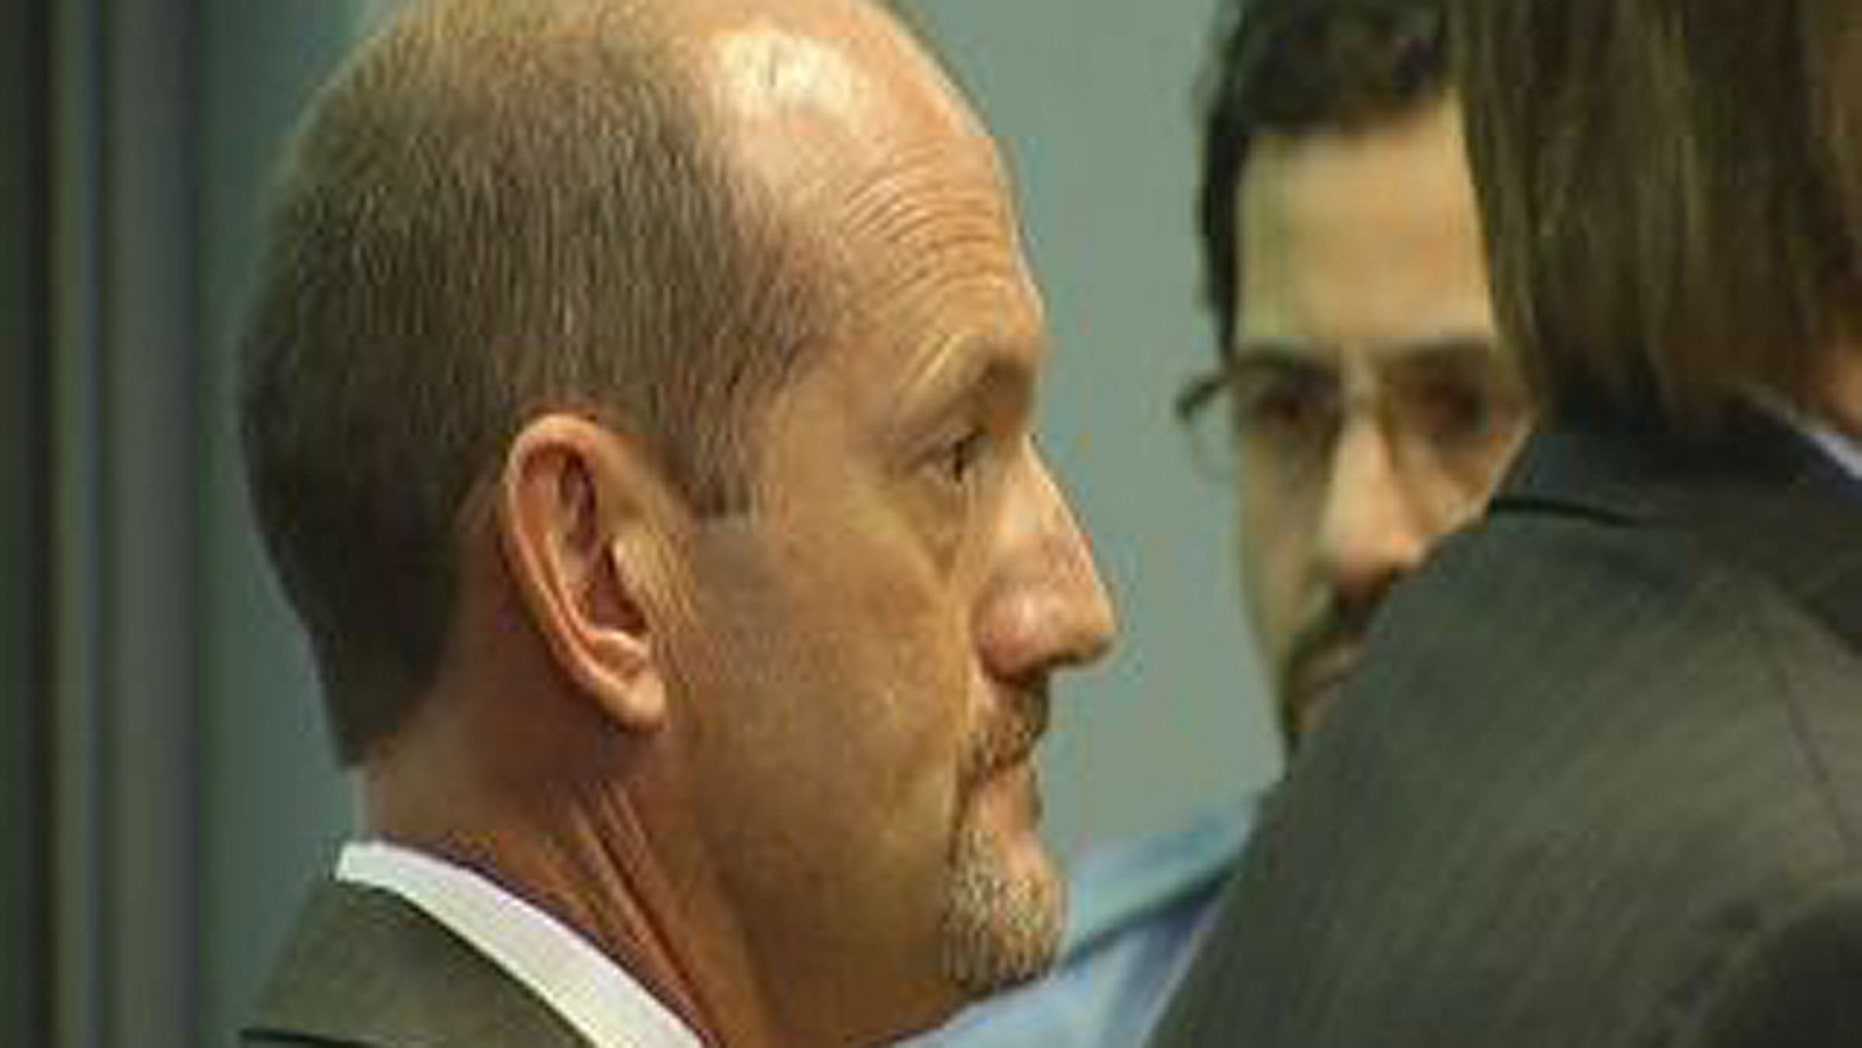 David Bourque appears in state court in June 2011.